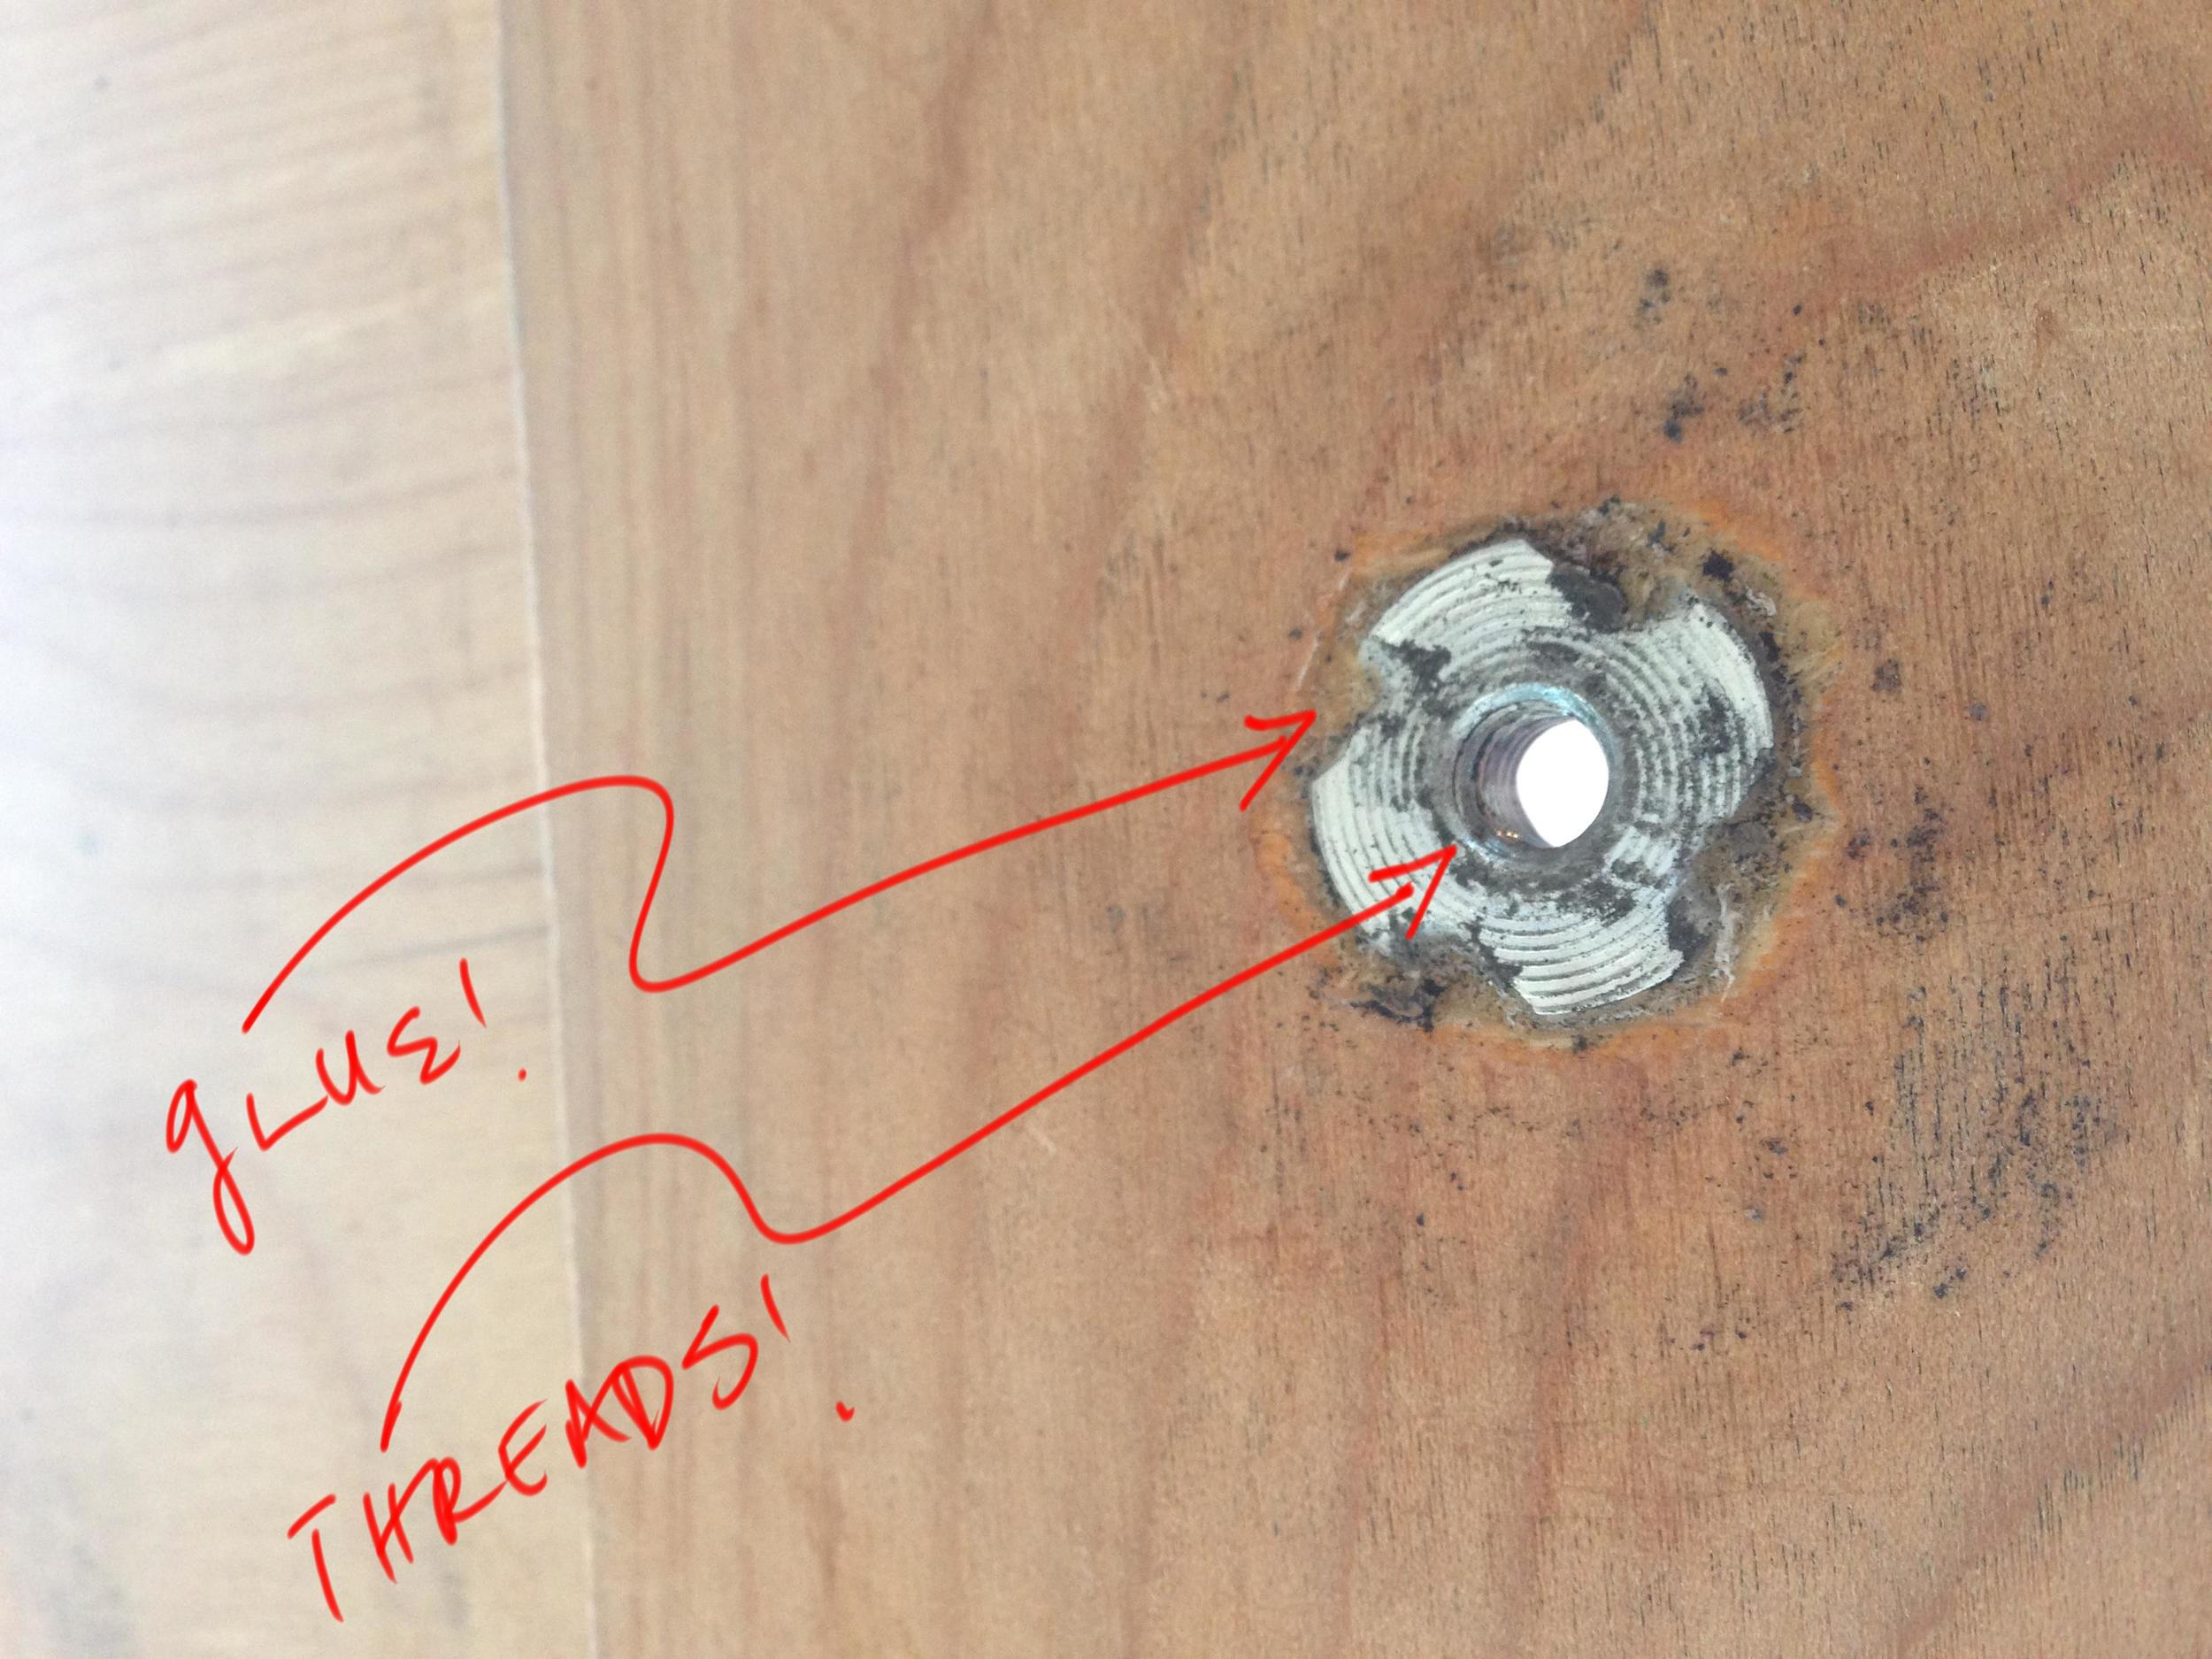 The t-nut glued into place.